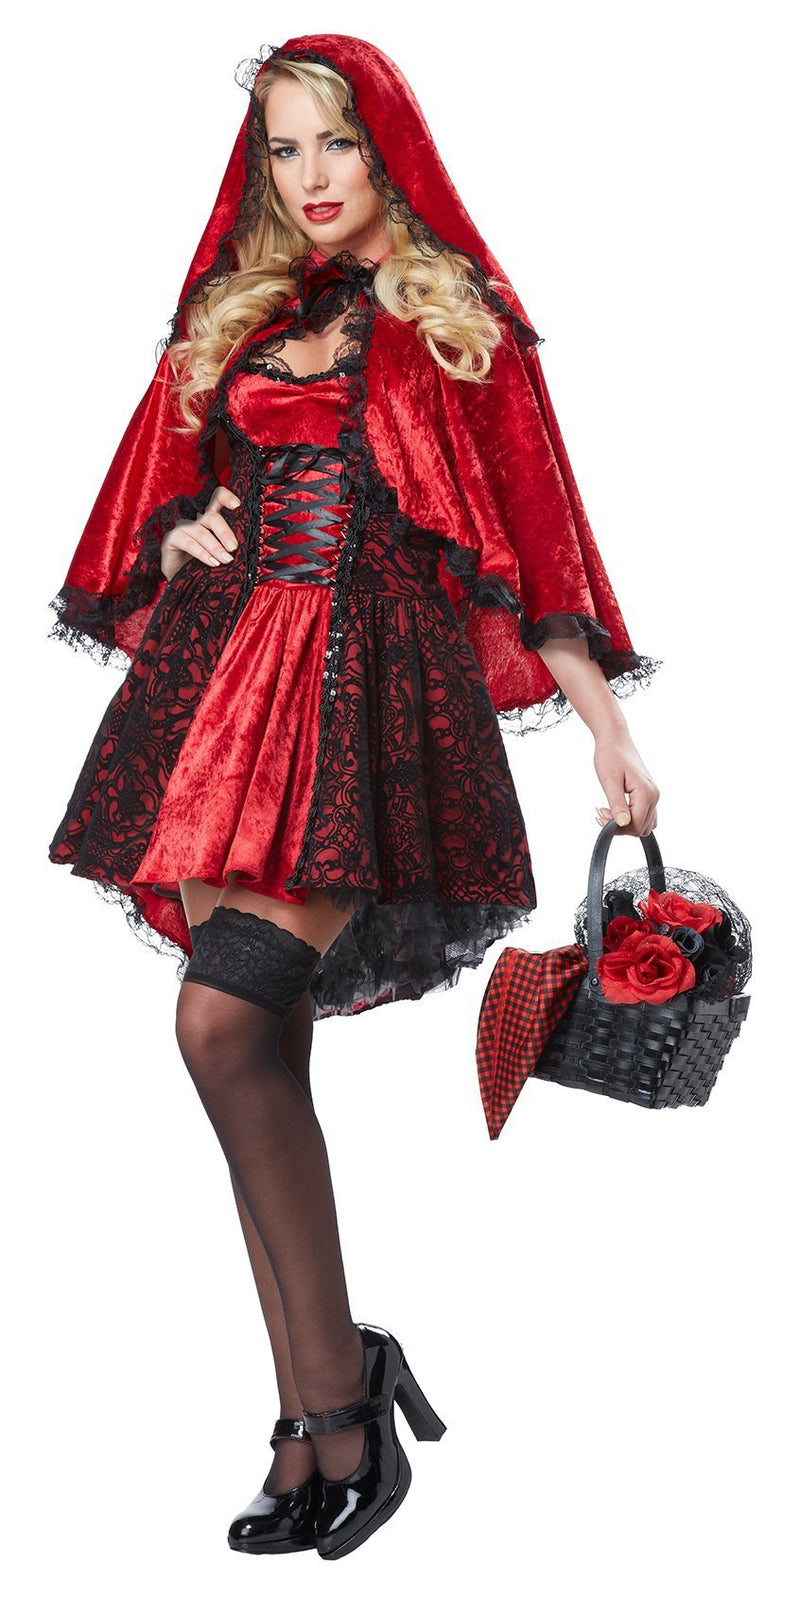 California Costumes Costumes Adult Deluxe Red Riding Hood Costume